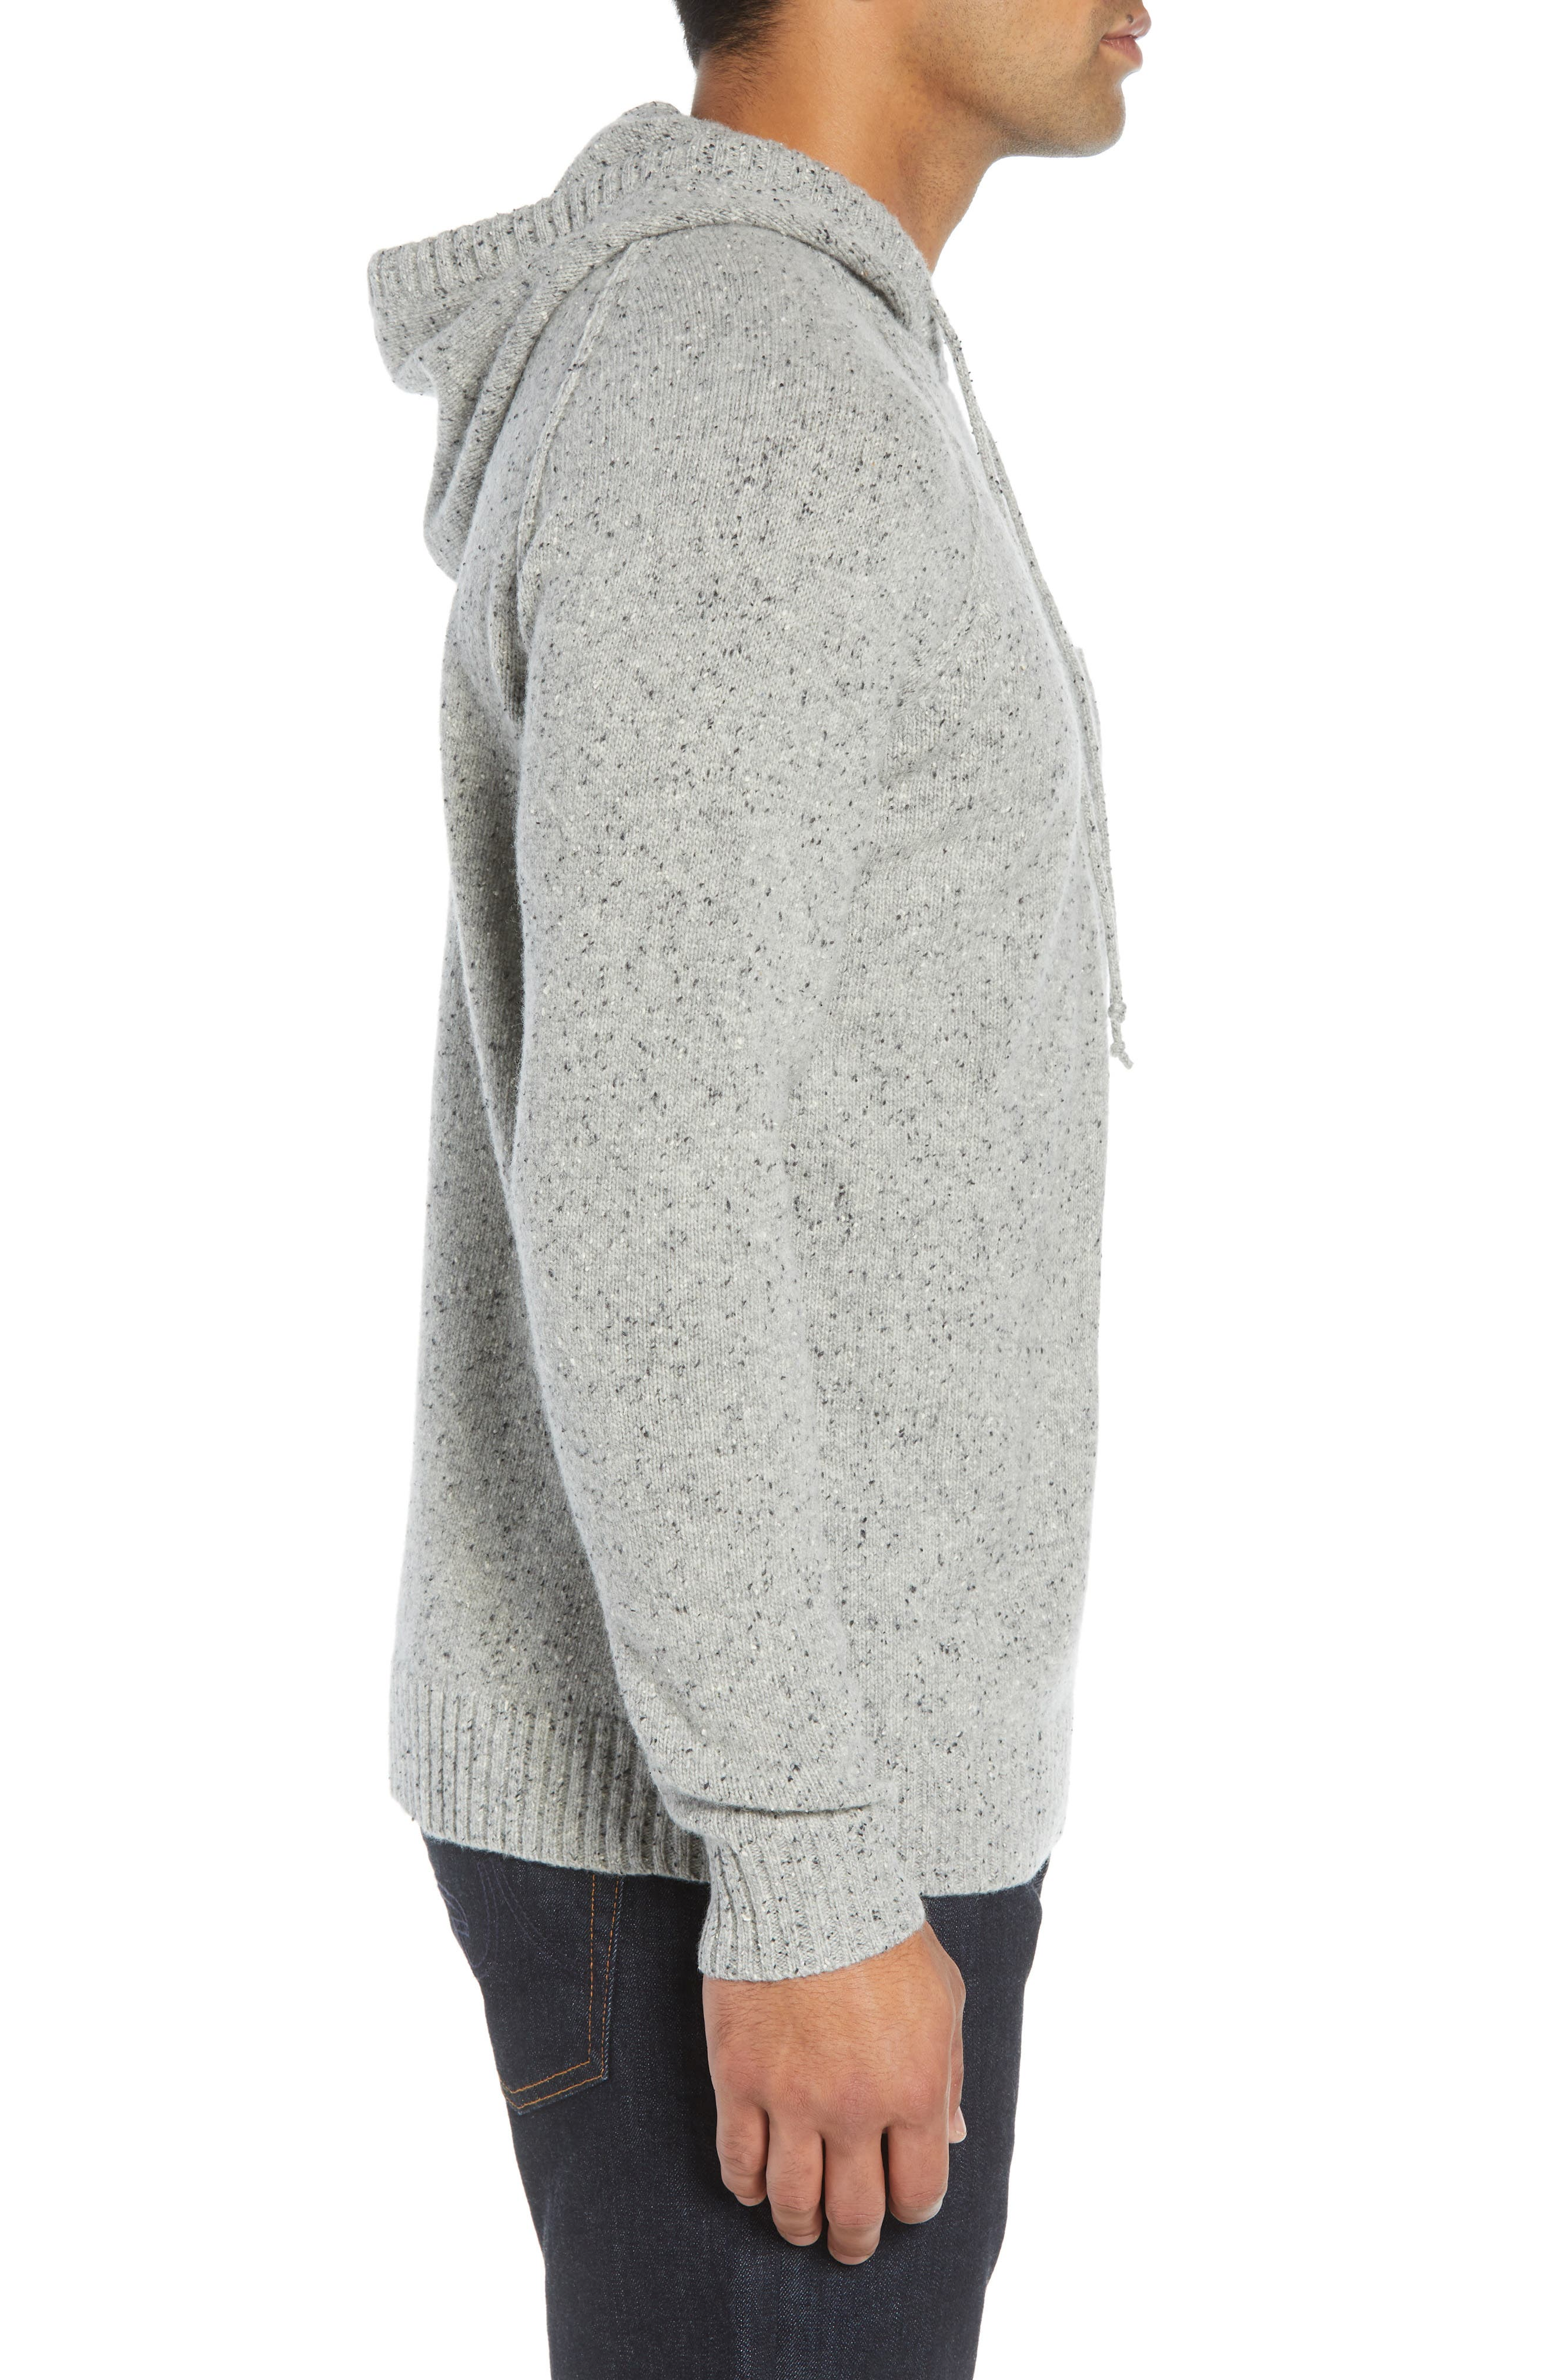 Rule 93 Donegal Regular Fit Hooded Sweater,                             Alternate thumbnail 3, color,                             GREY